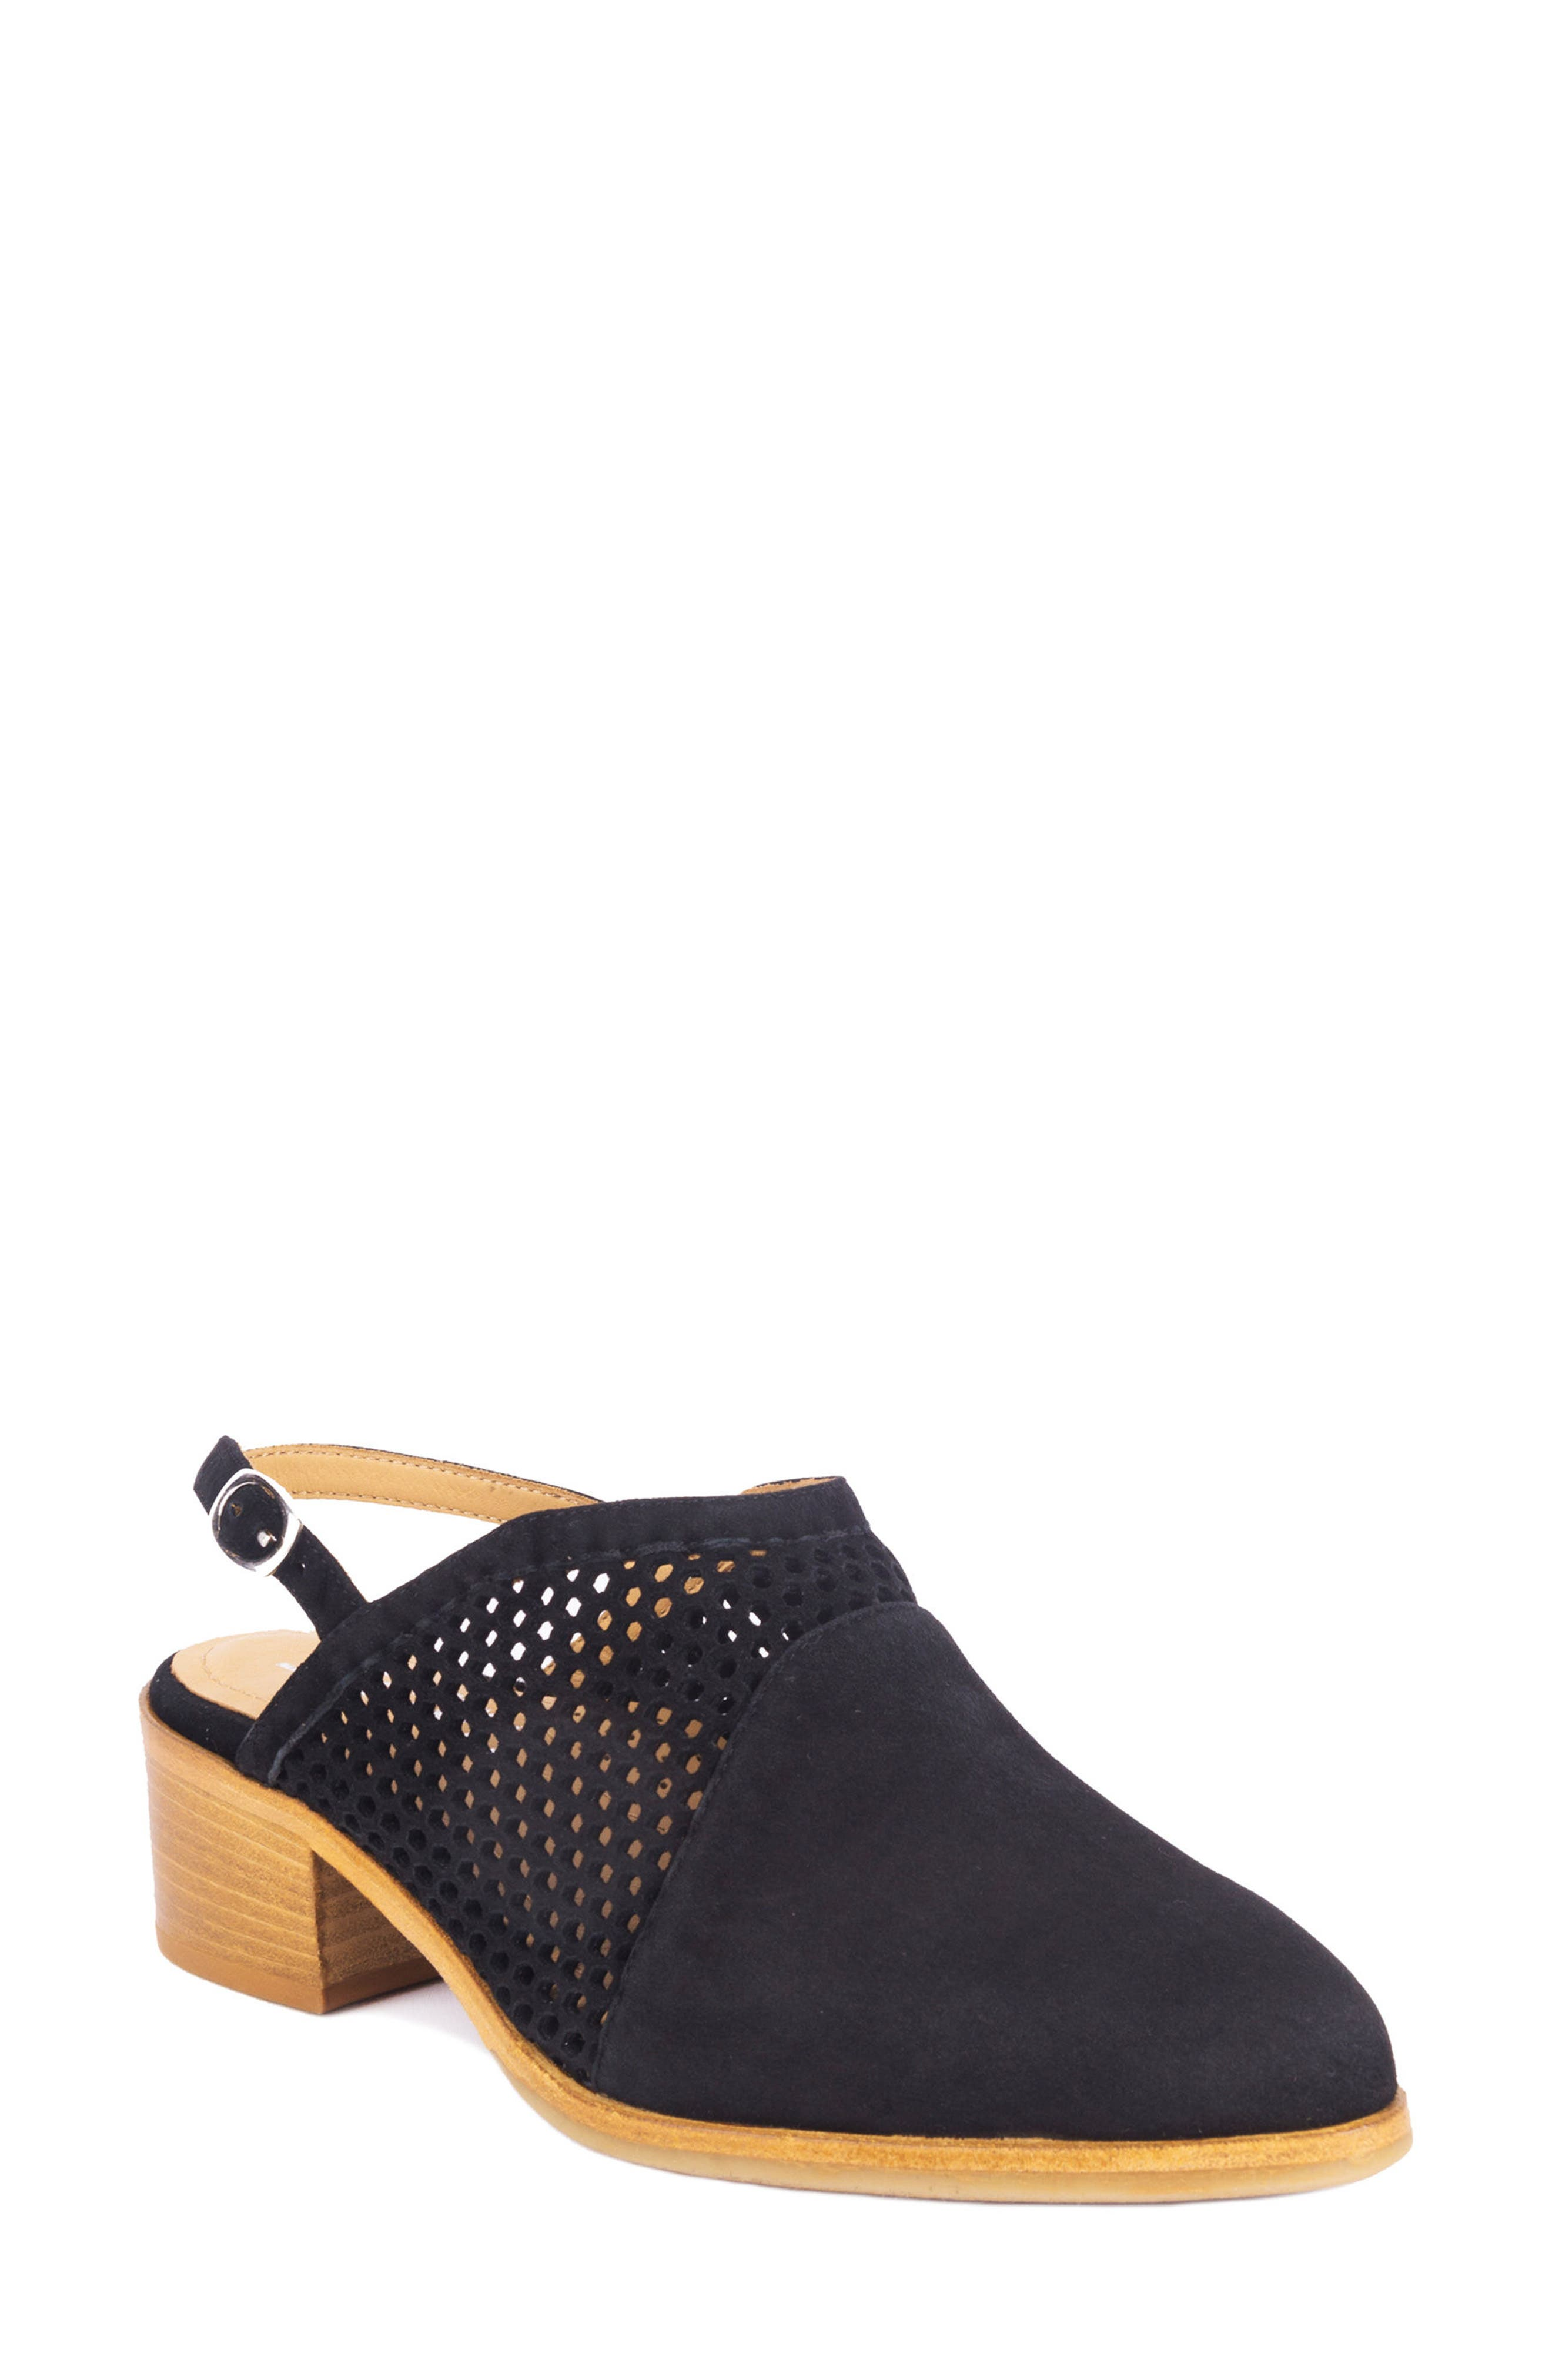 Toselli Water Resistant Slingback Bootie,                             Main thumbnail 1, color,                             NERO